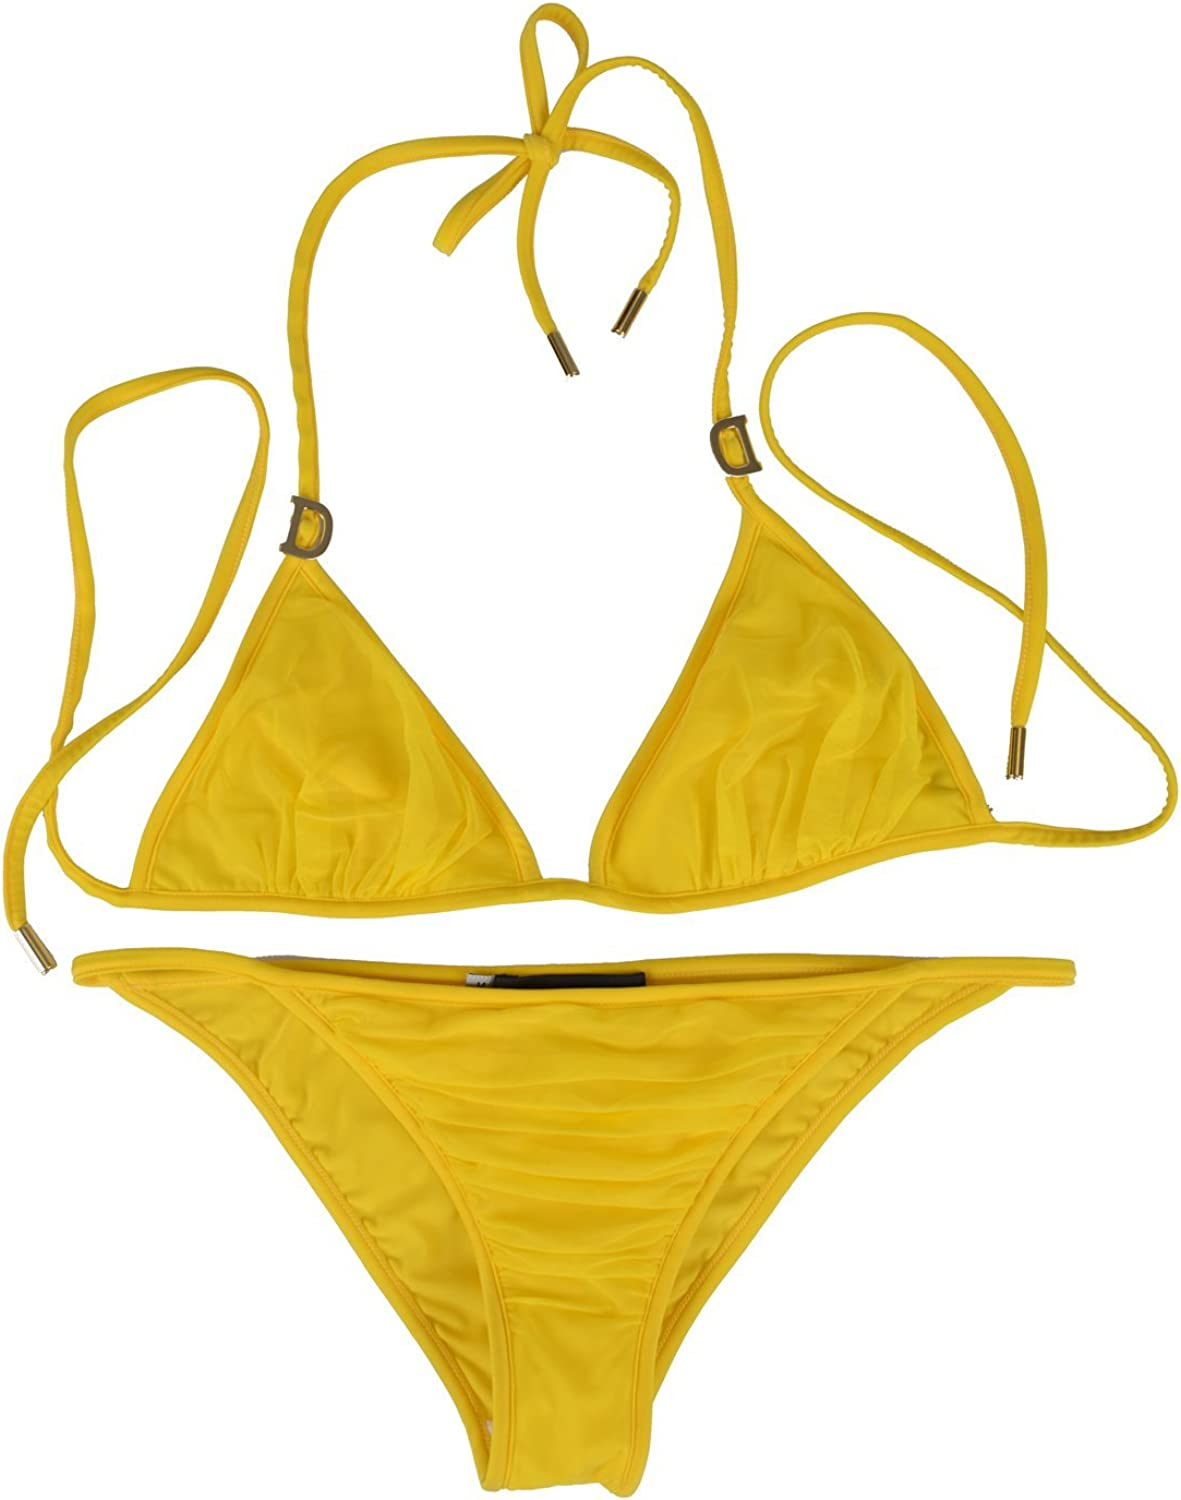 Dsquared Women's Yellow Metal Detail Decorated Two Piece Bikini Swimsuit US L EU 44